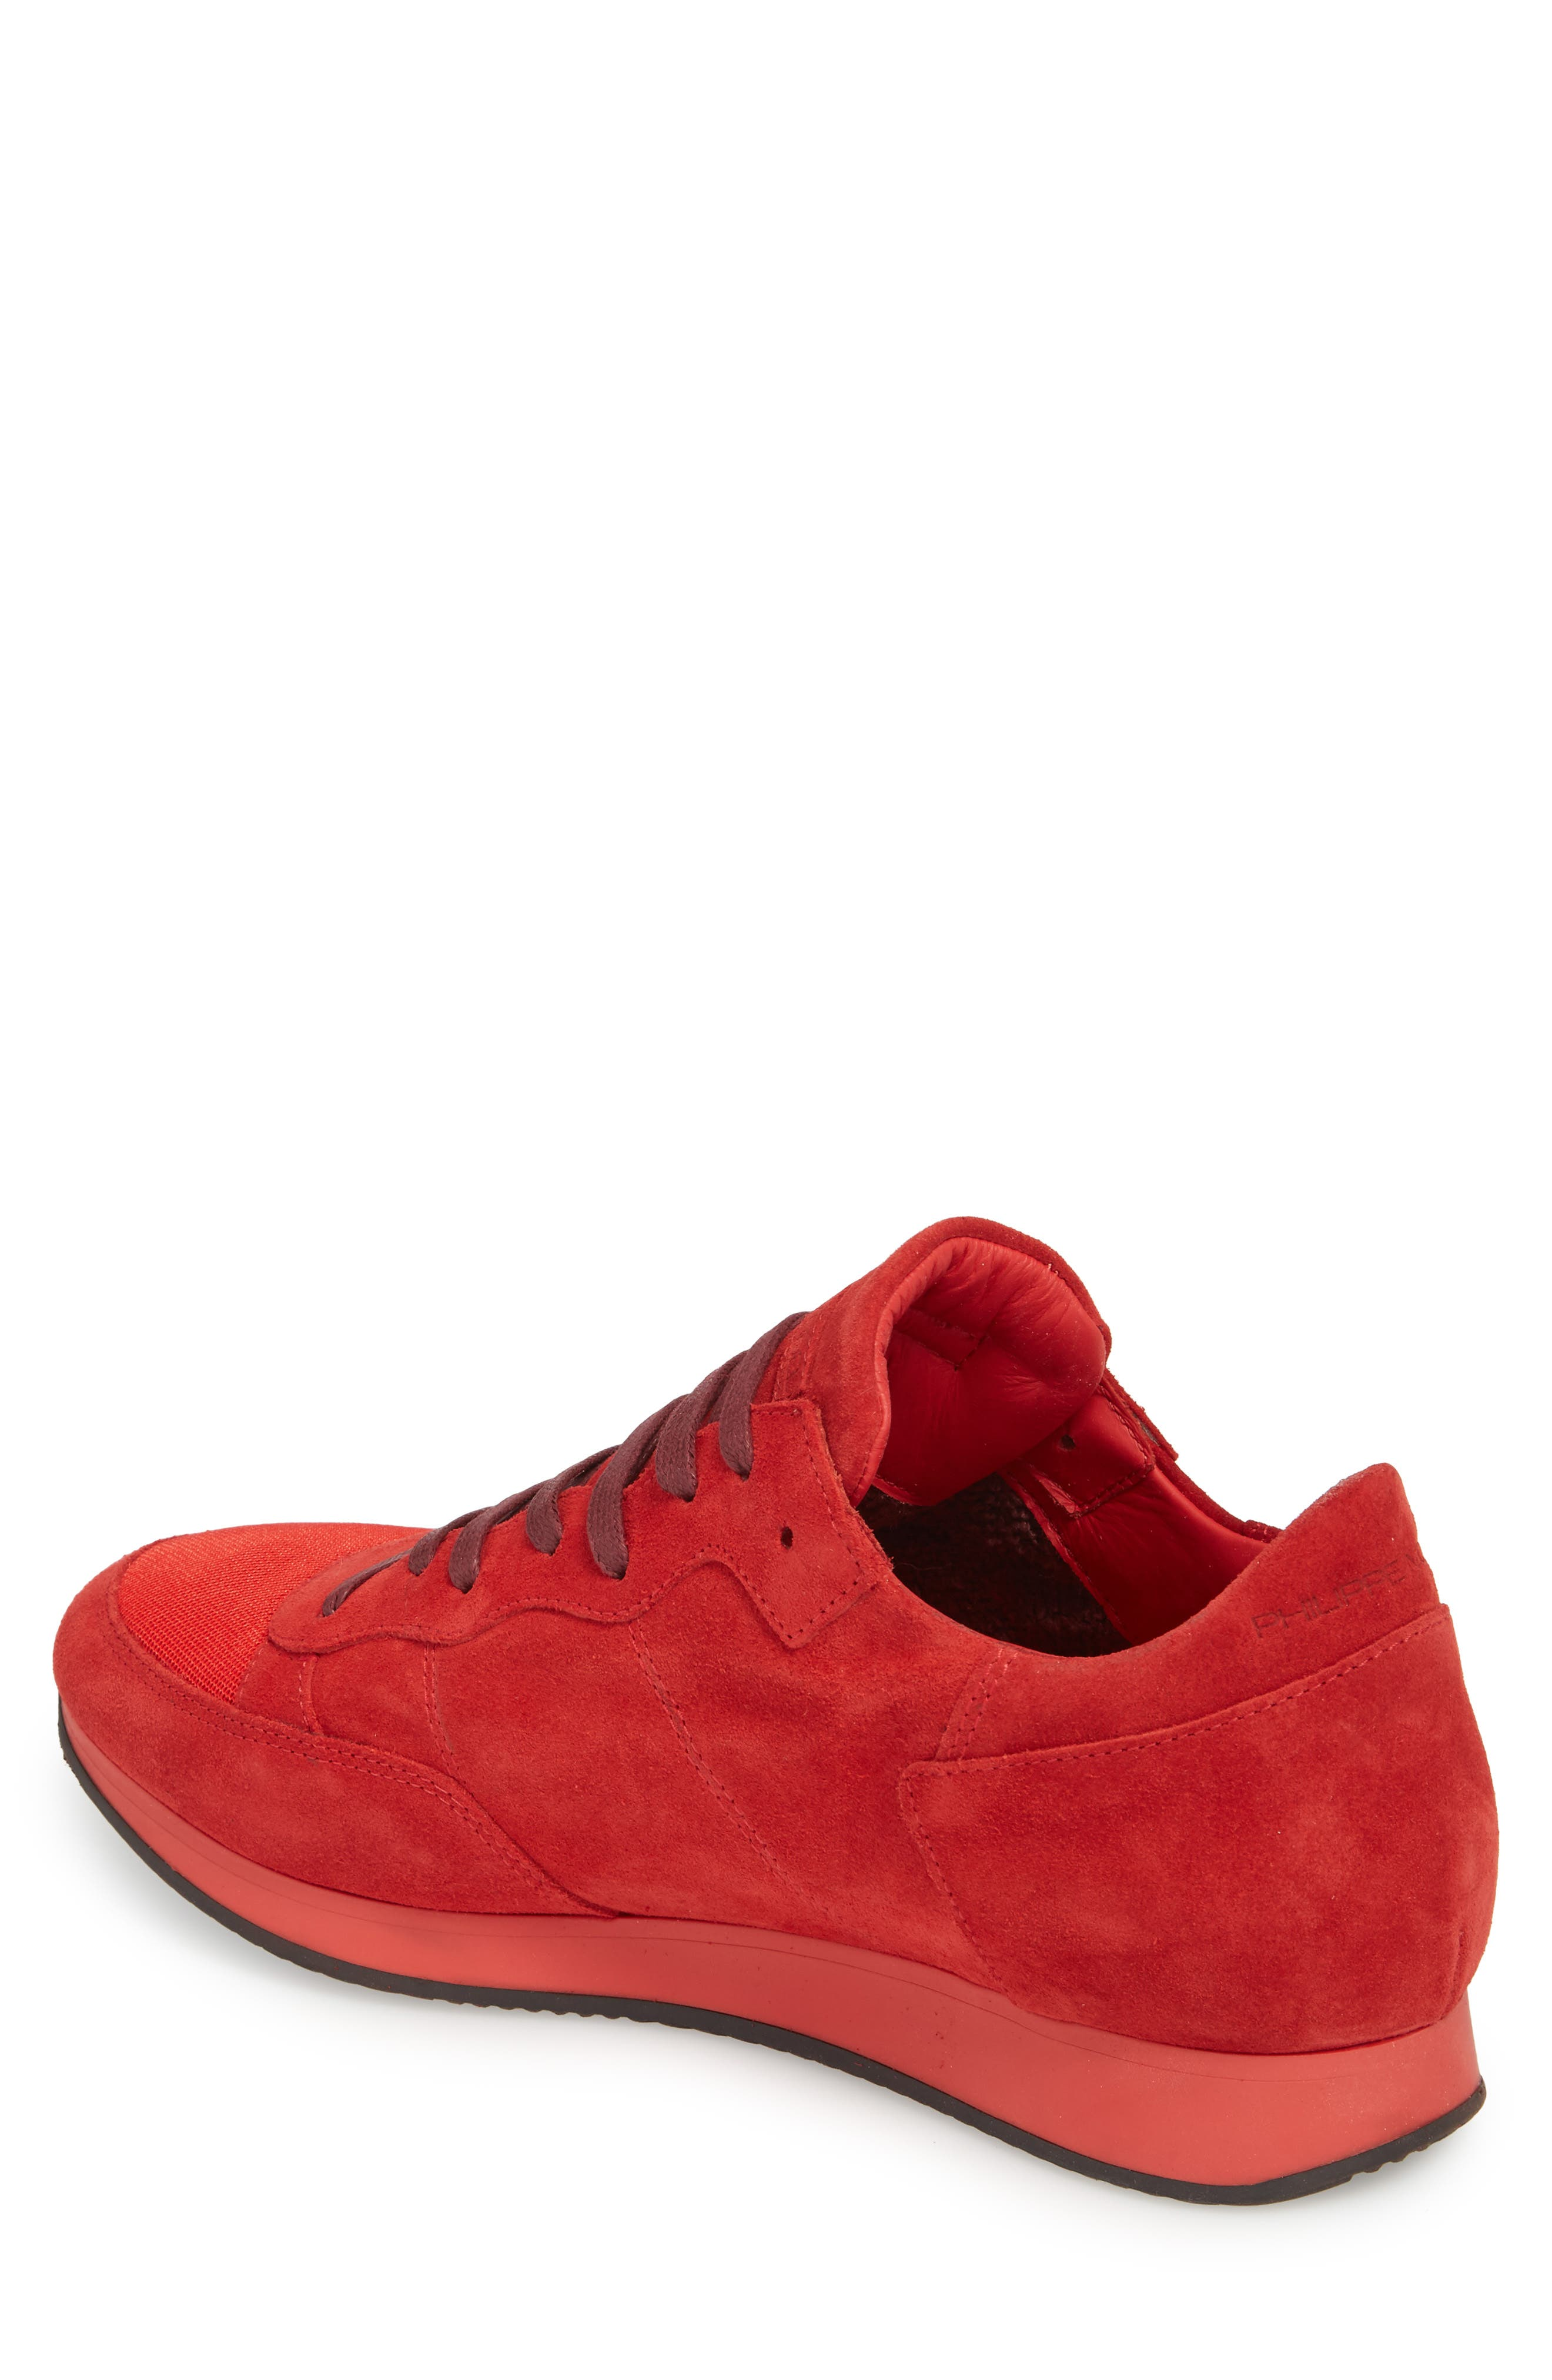 Tropez Low Top Sneaker,                             Alternate thumbnail 2, color,                             Red Suede